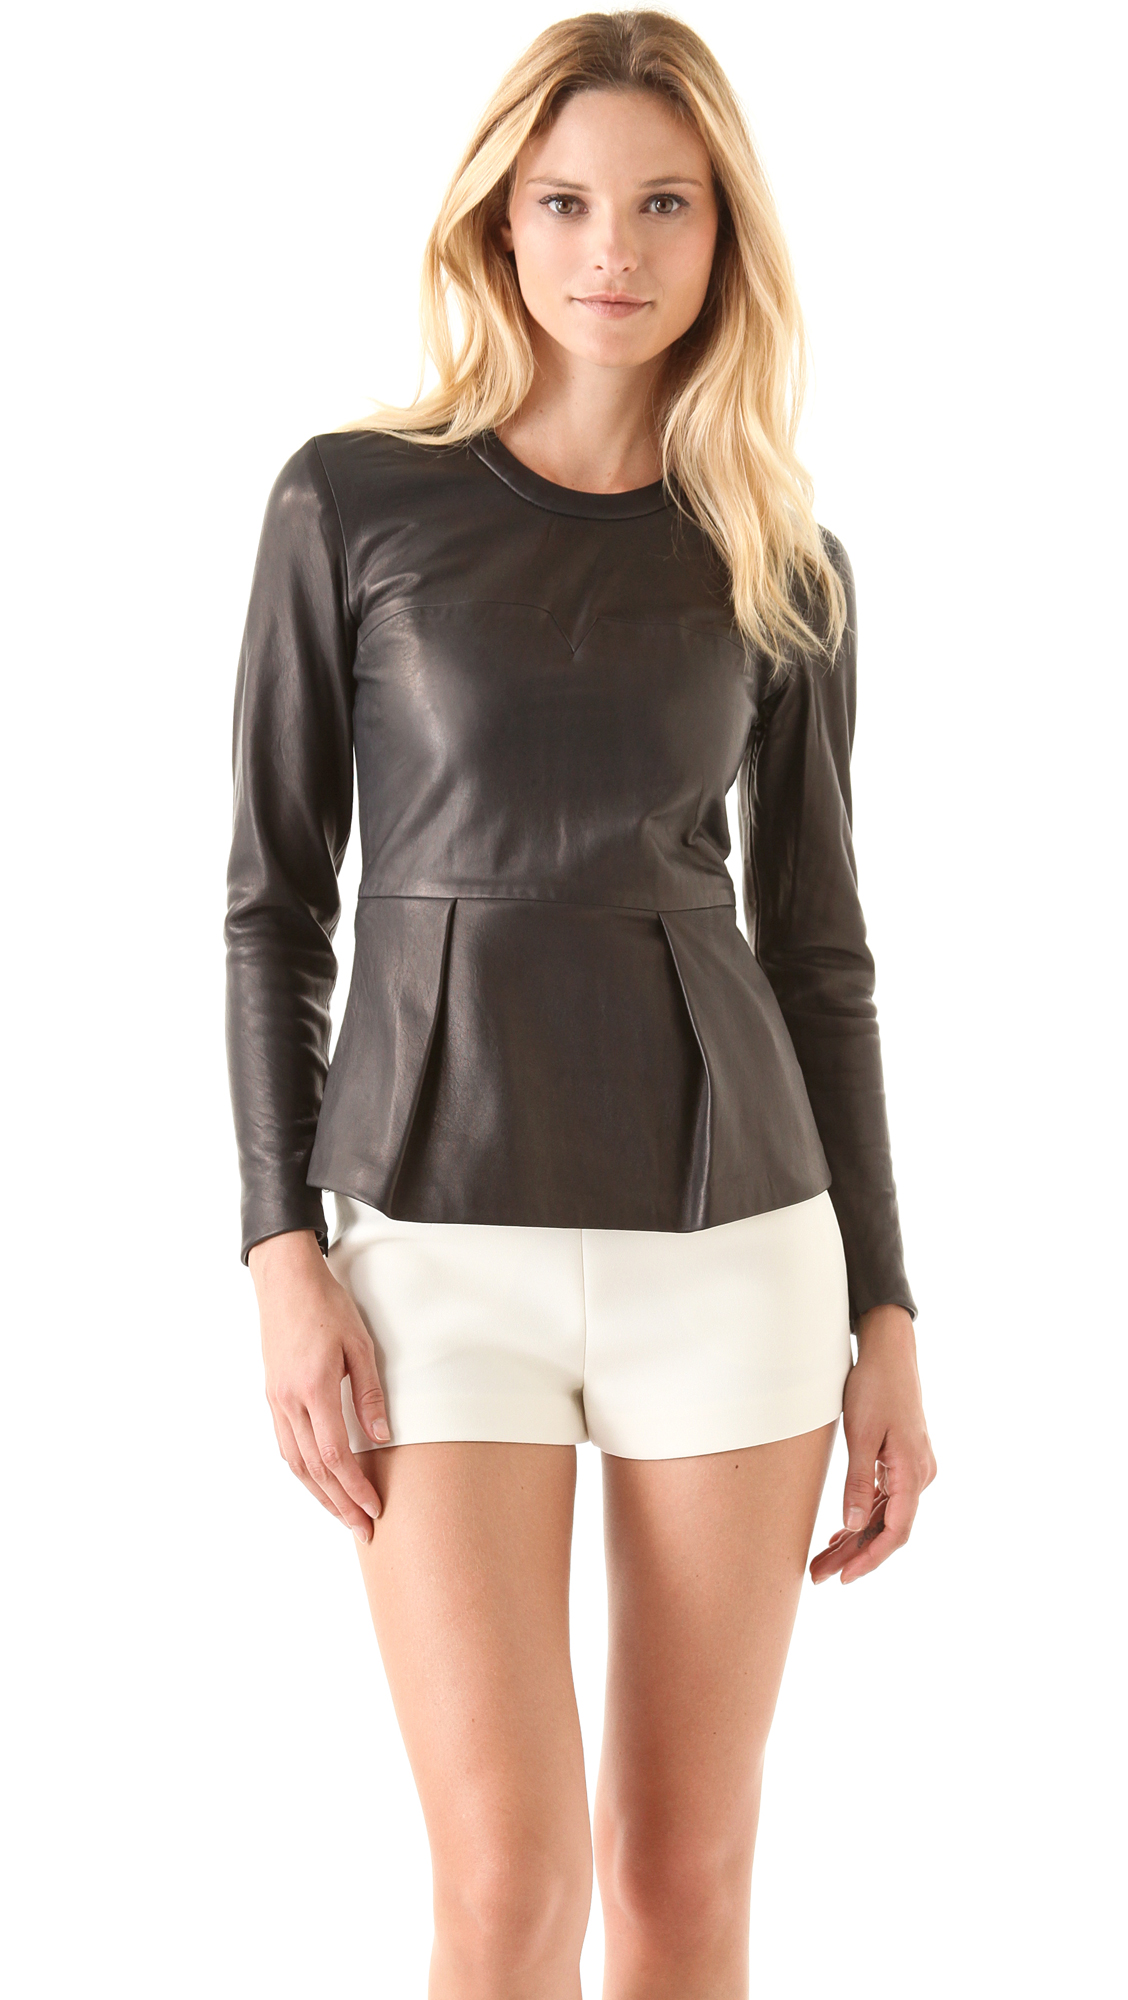 Shop Ashley Stewart for this plus size one shoulder peplum top: sexy, fun, flirty, trendy w/ a smoking hot, comfy fit + confident, cool, foxy faux leather!